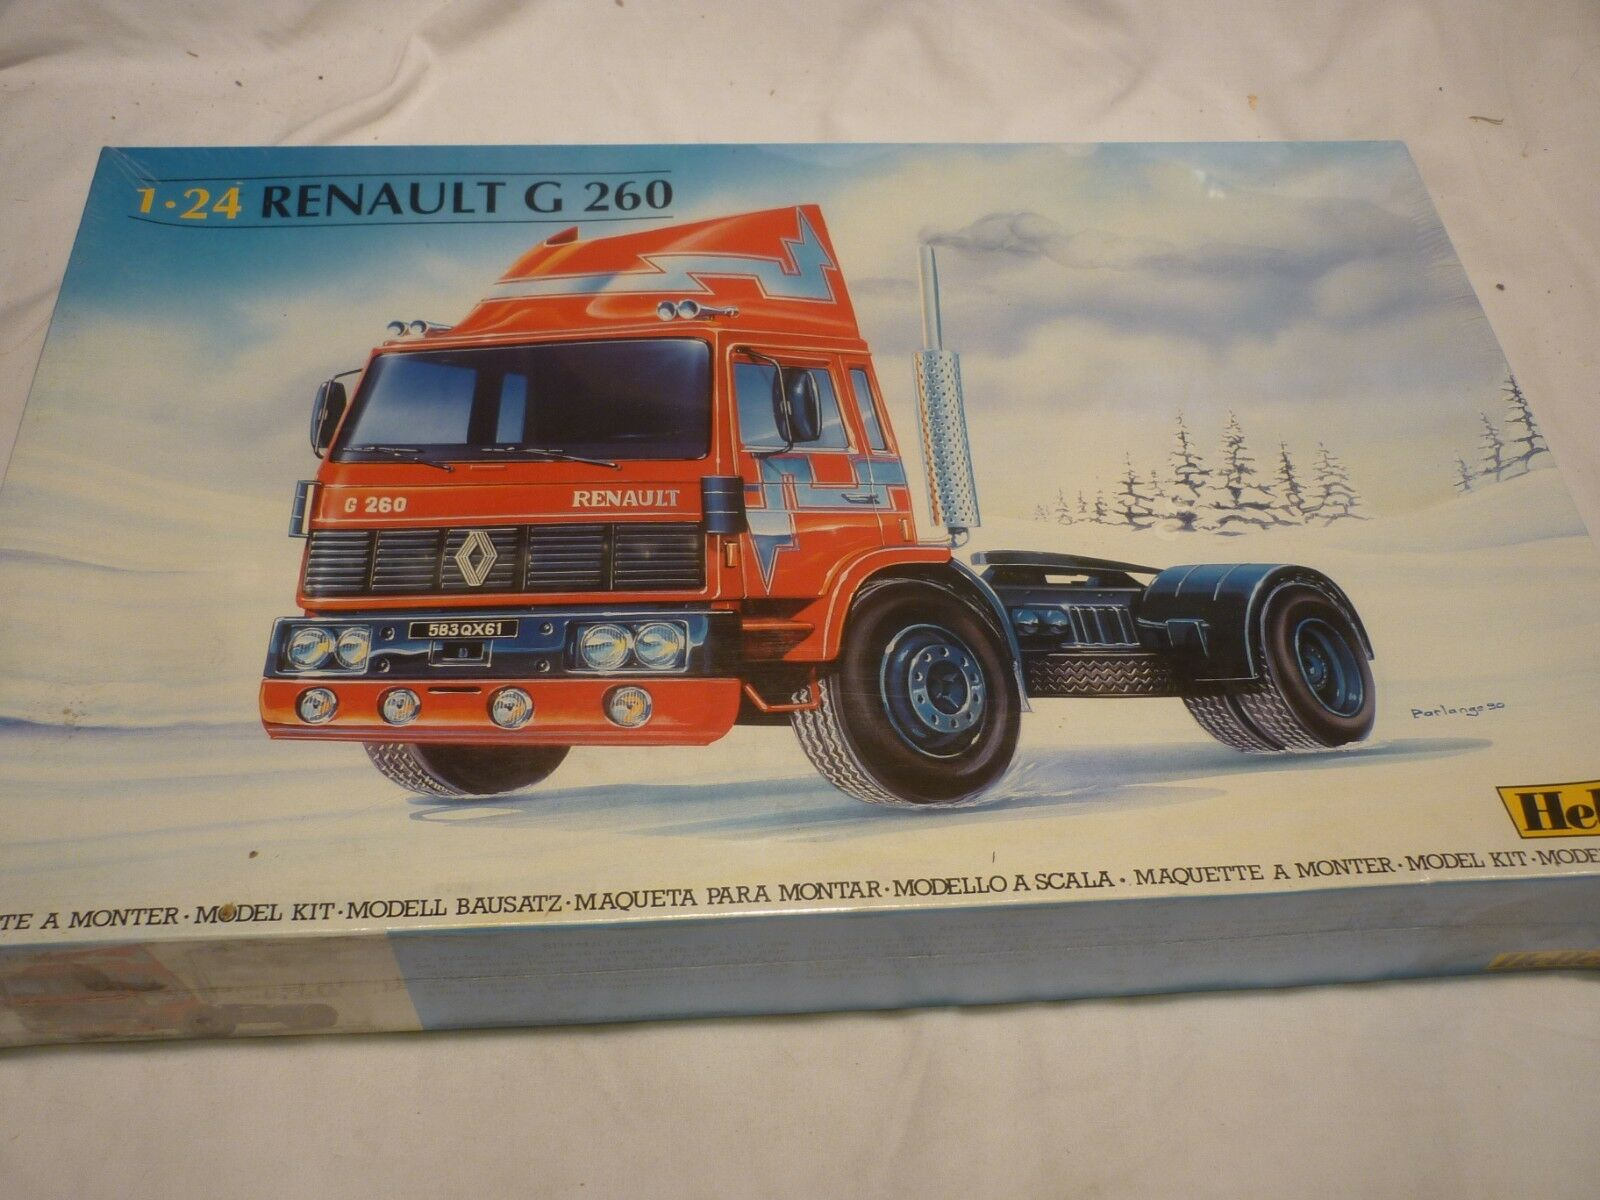 A Vintage HELLER un-opened   un-made plastic kit of a RENAULT G 260